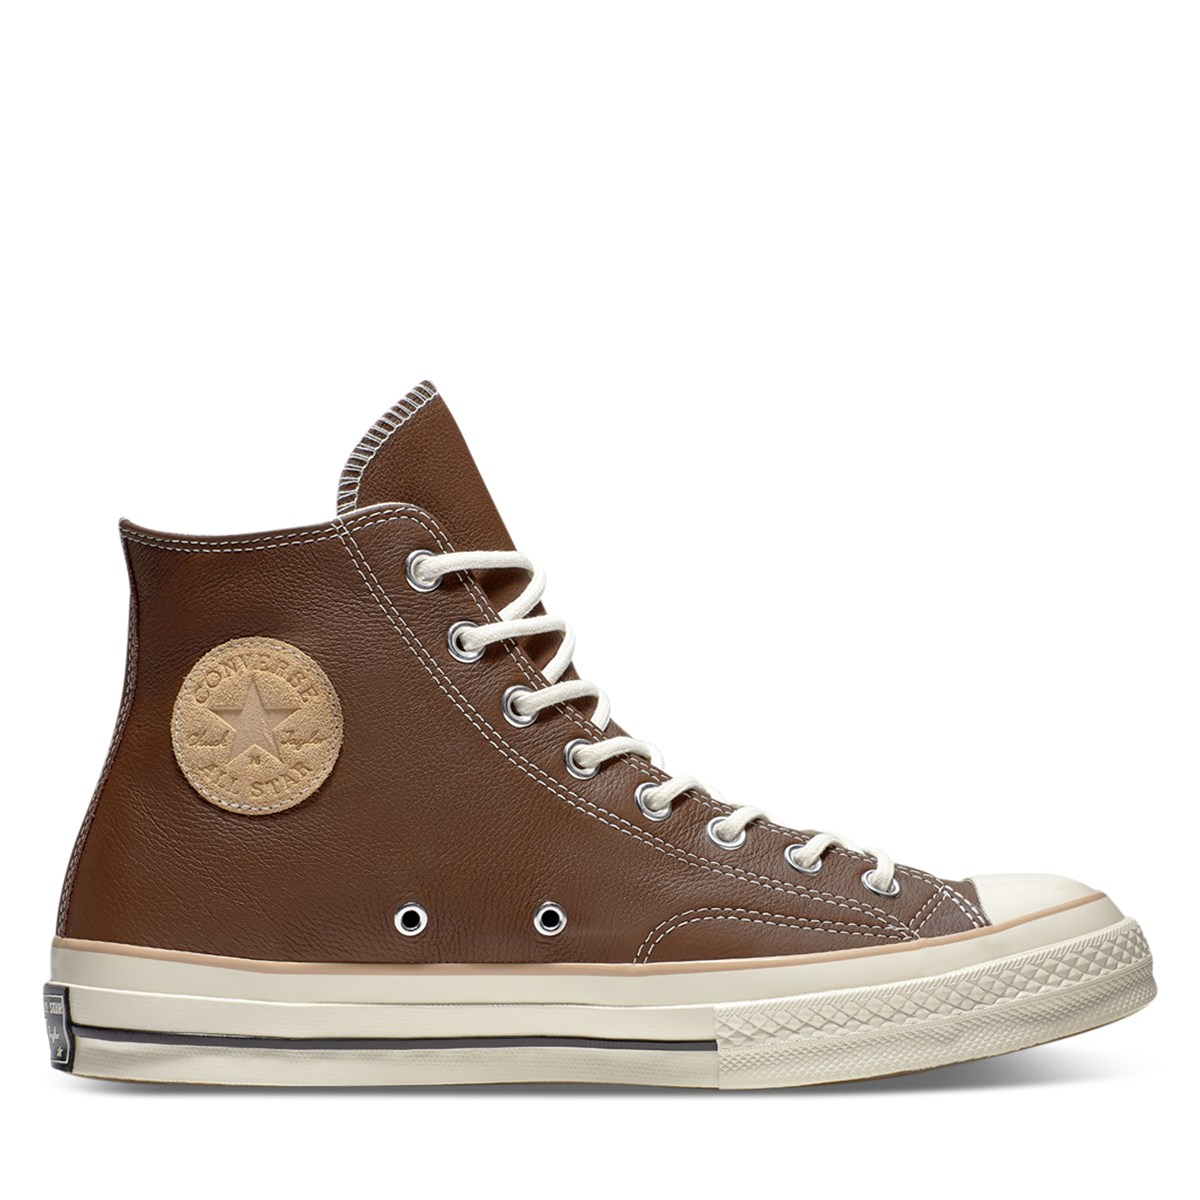 Men's Chuck 70 Hi Leather Sneakers in Brown